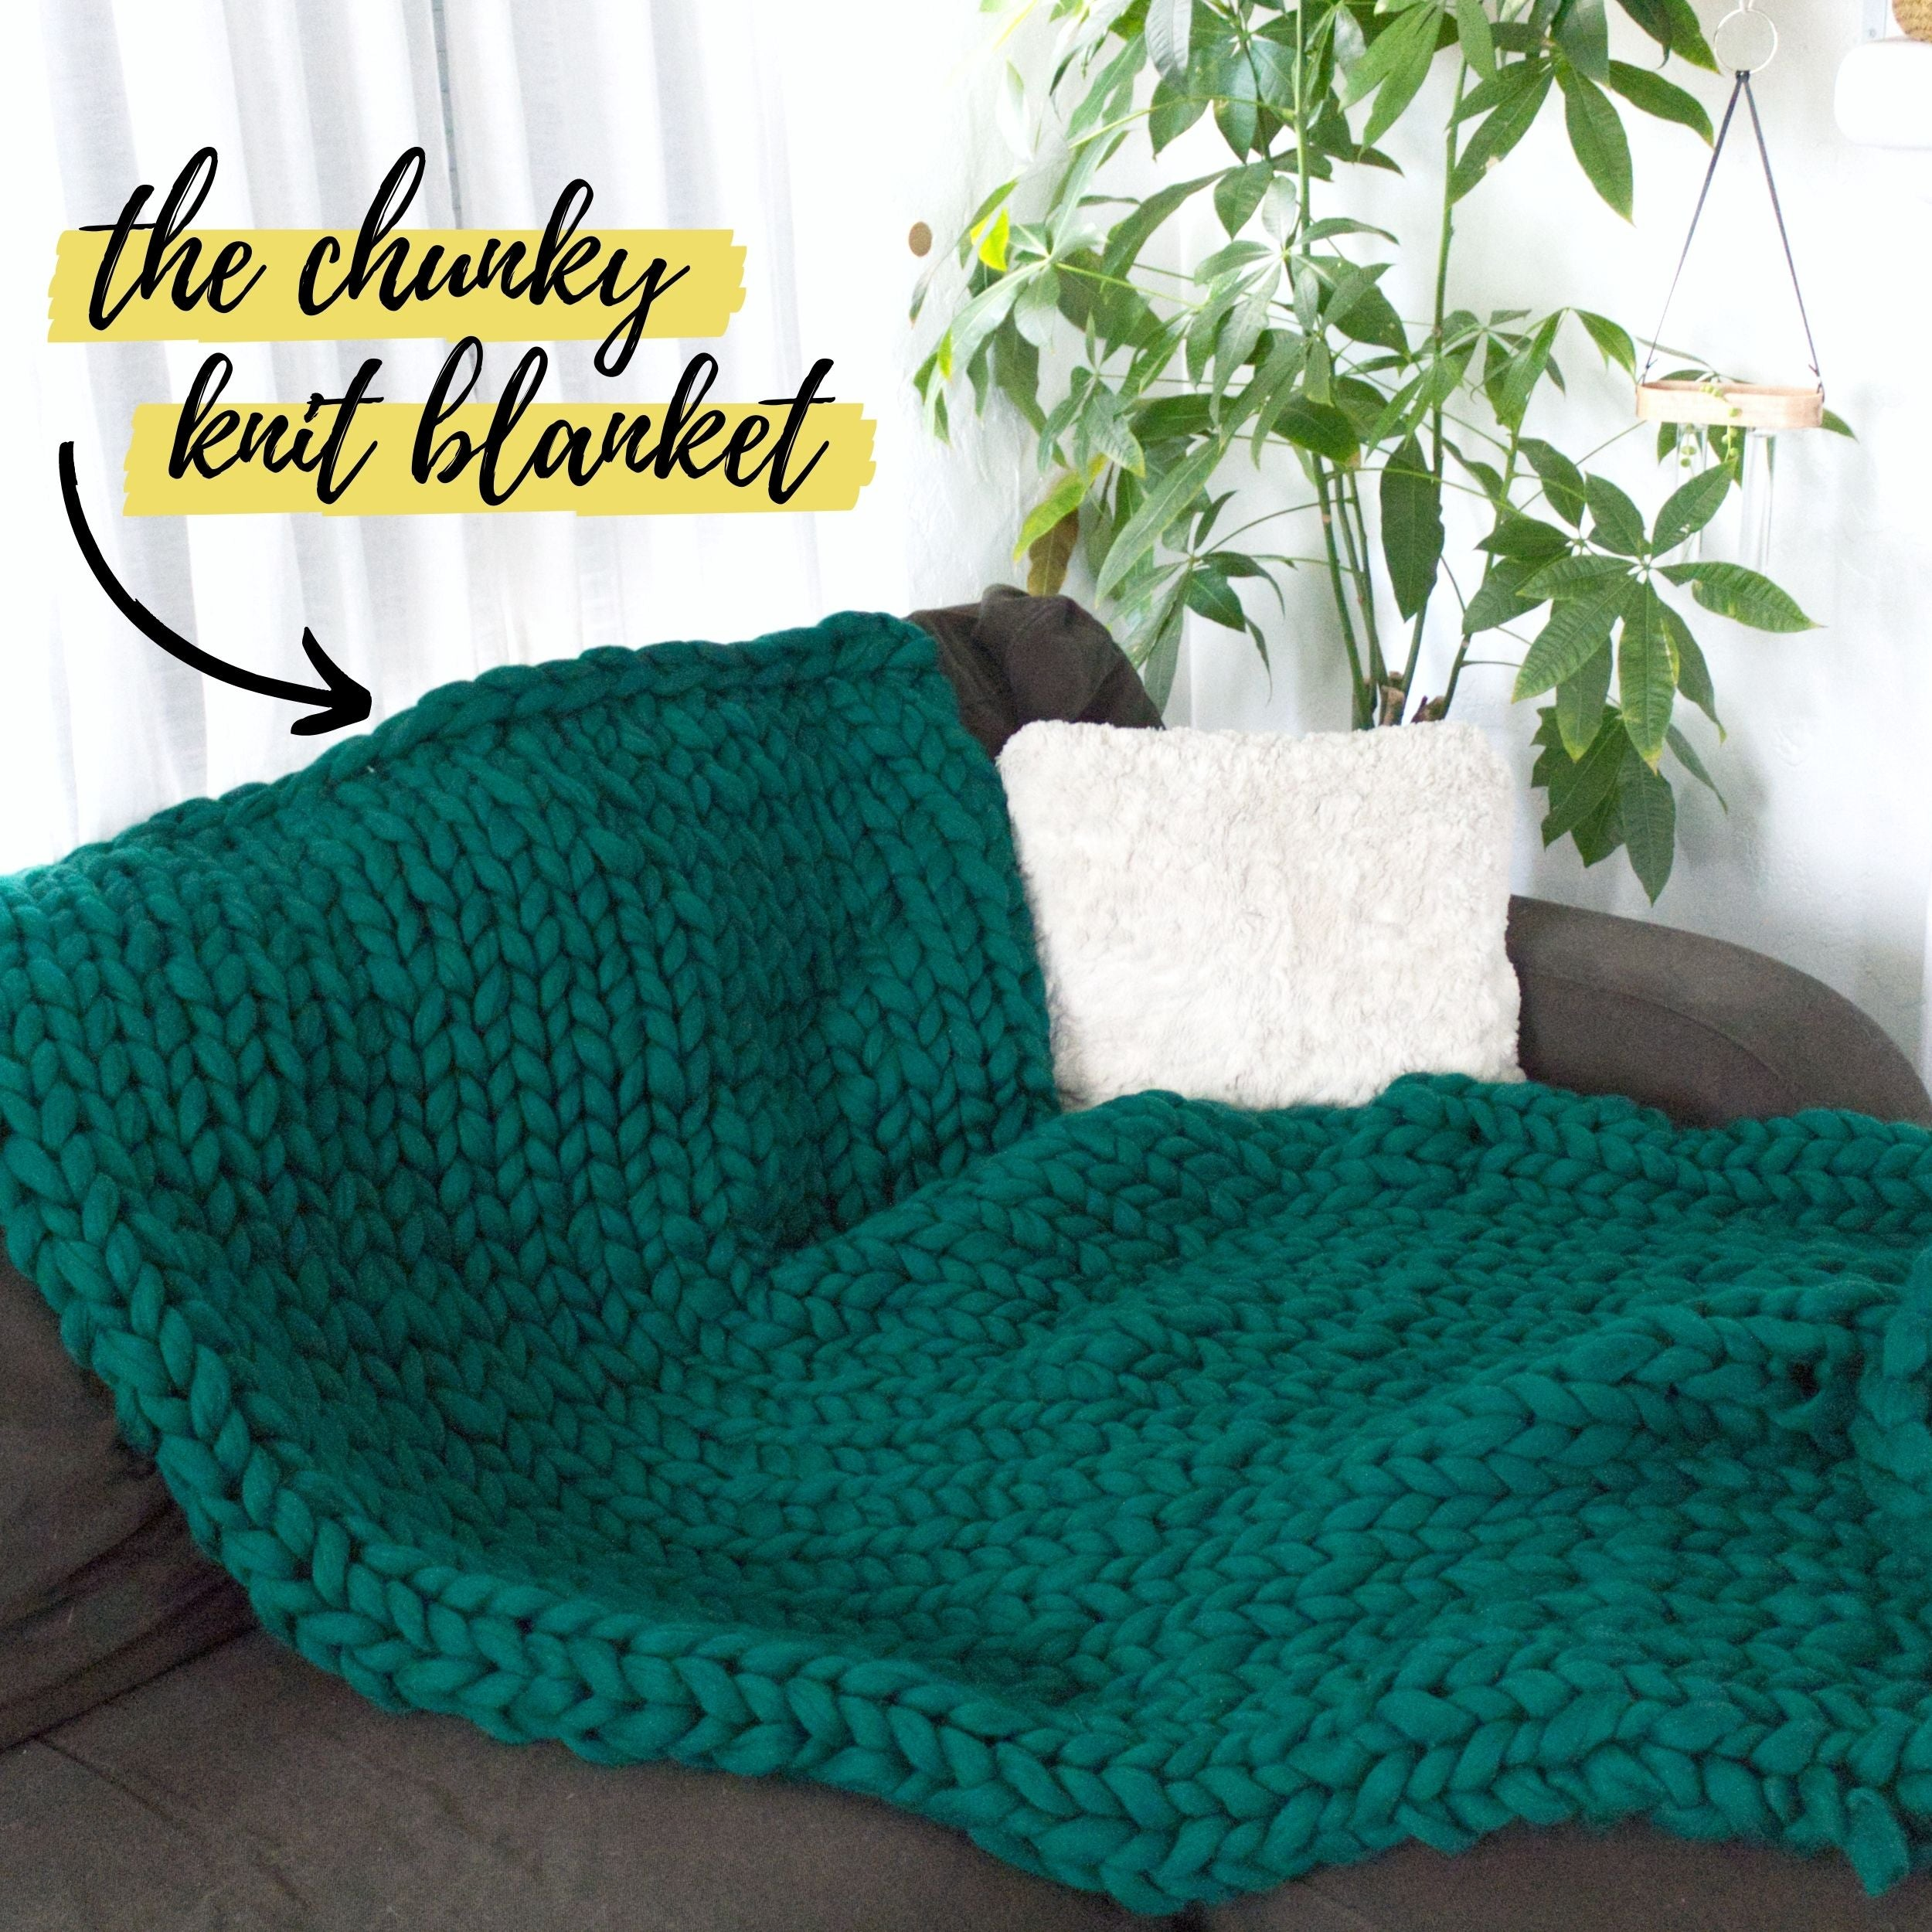 The DIY chunky knit blanket